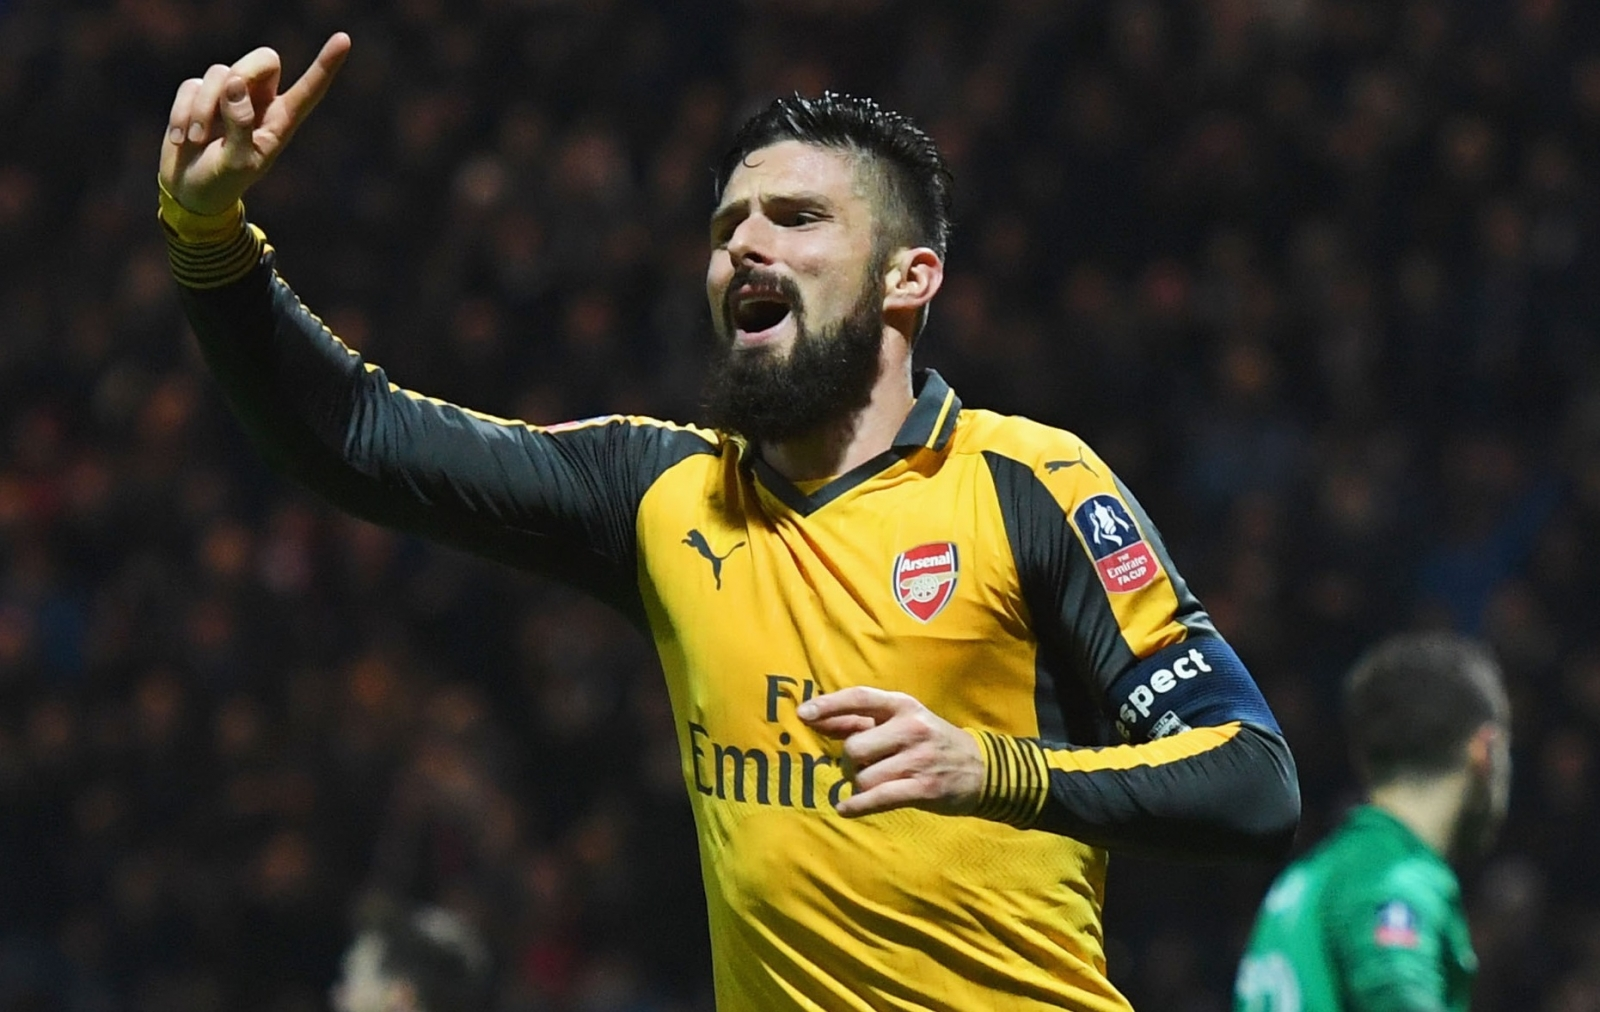 Ten-man Arsenal win thriller with last-gasp penalty